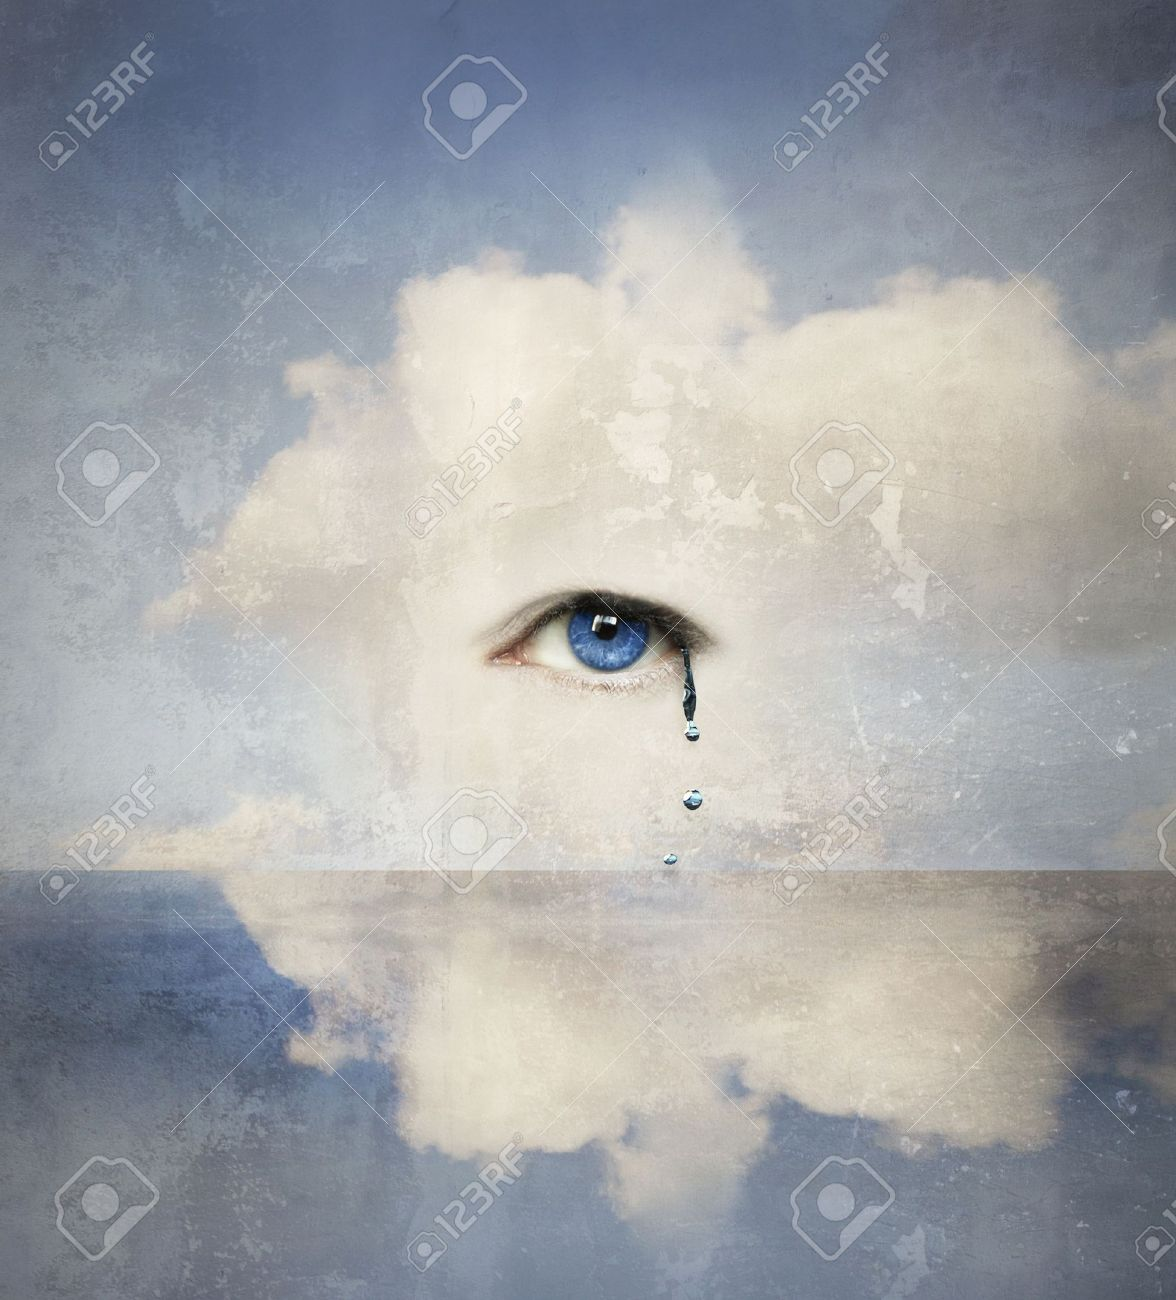 Fantasy concept of a human eye crying in the clouds Stock Photo - 14713064